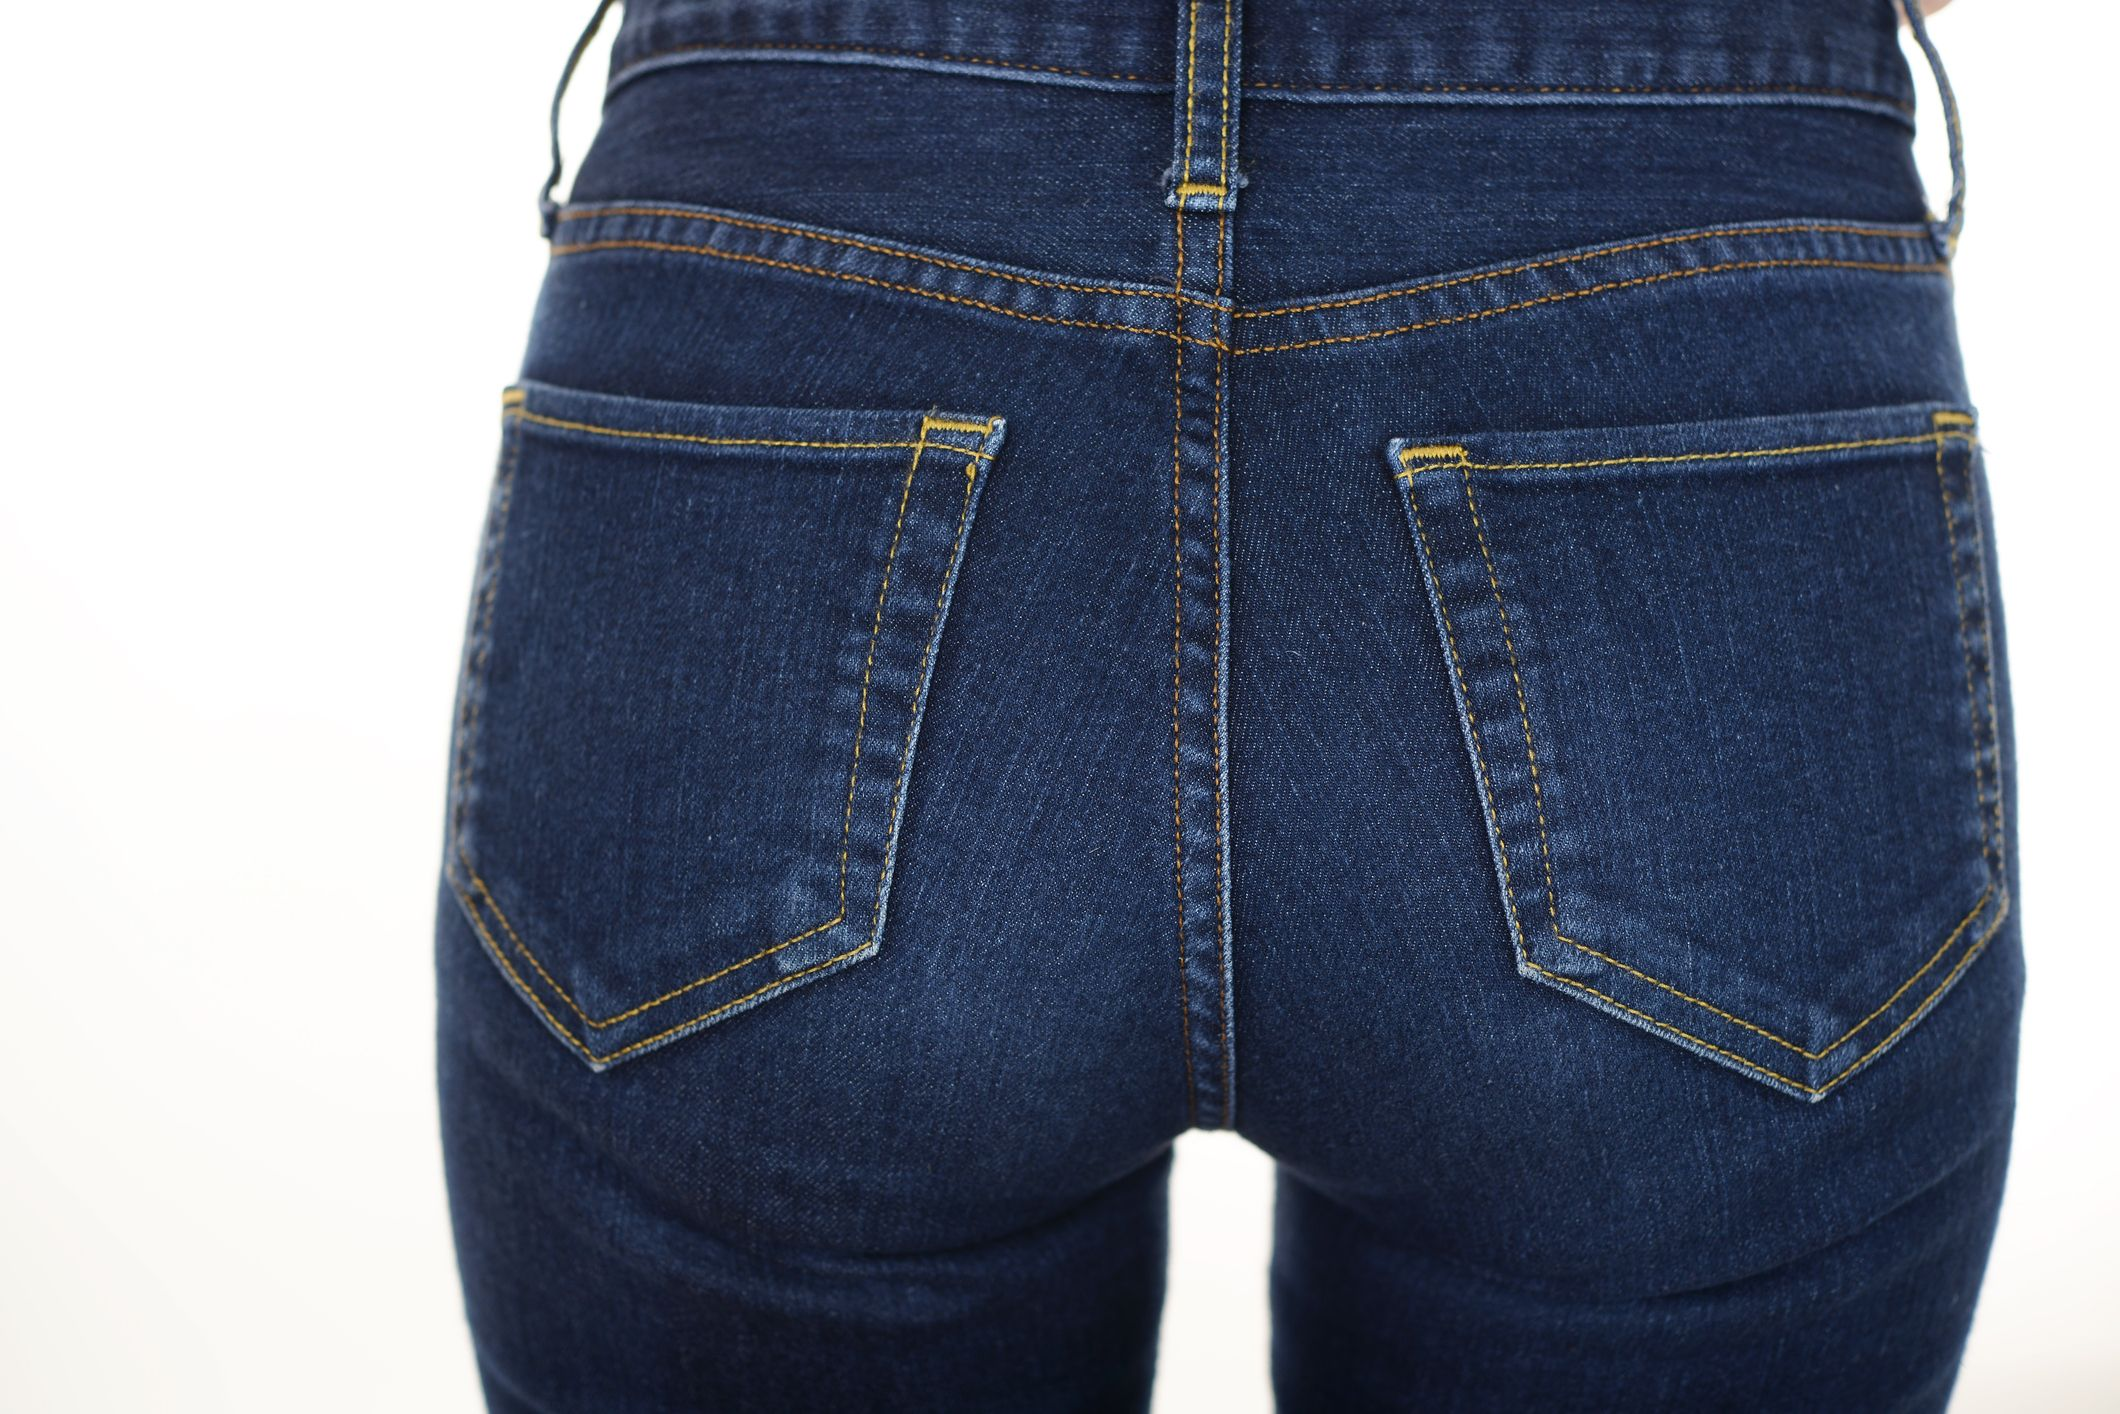 jeans-woman-butt-stock